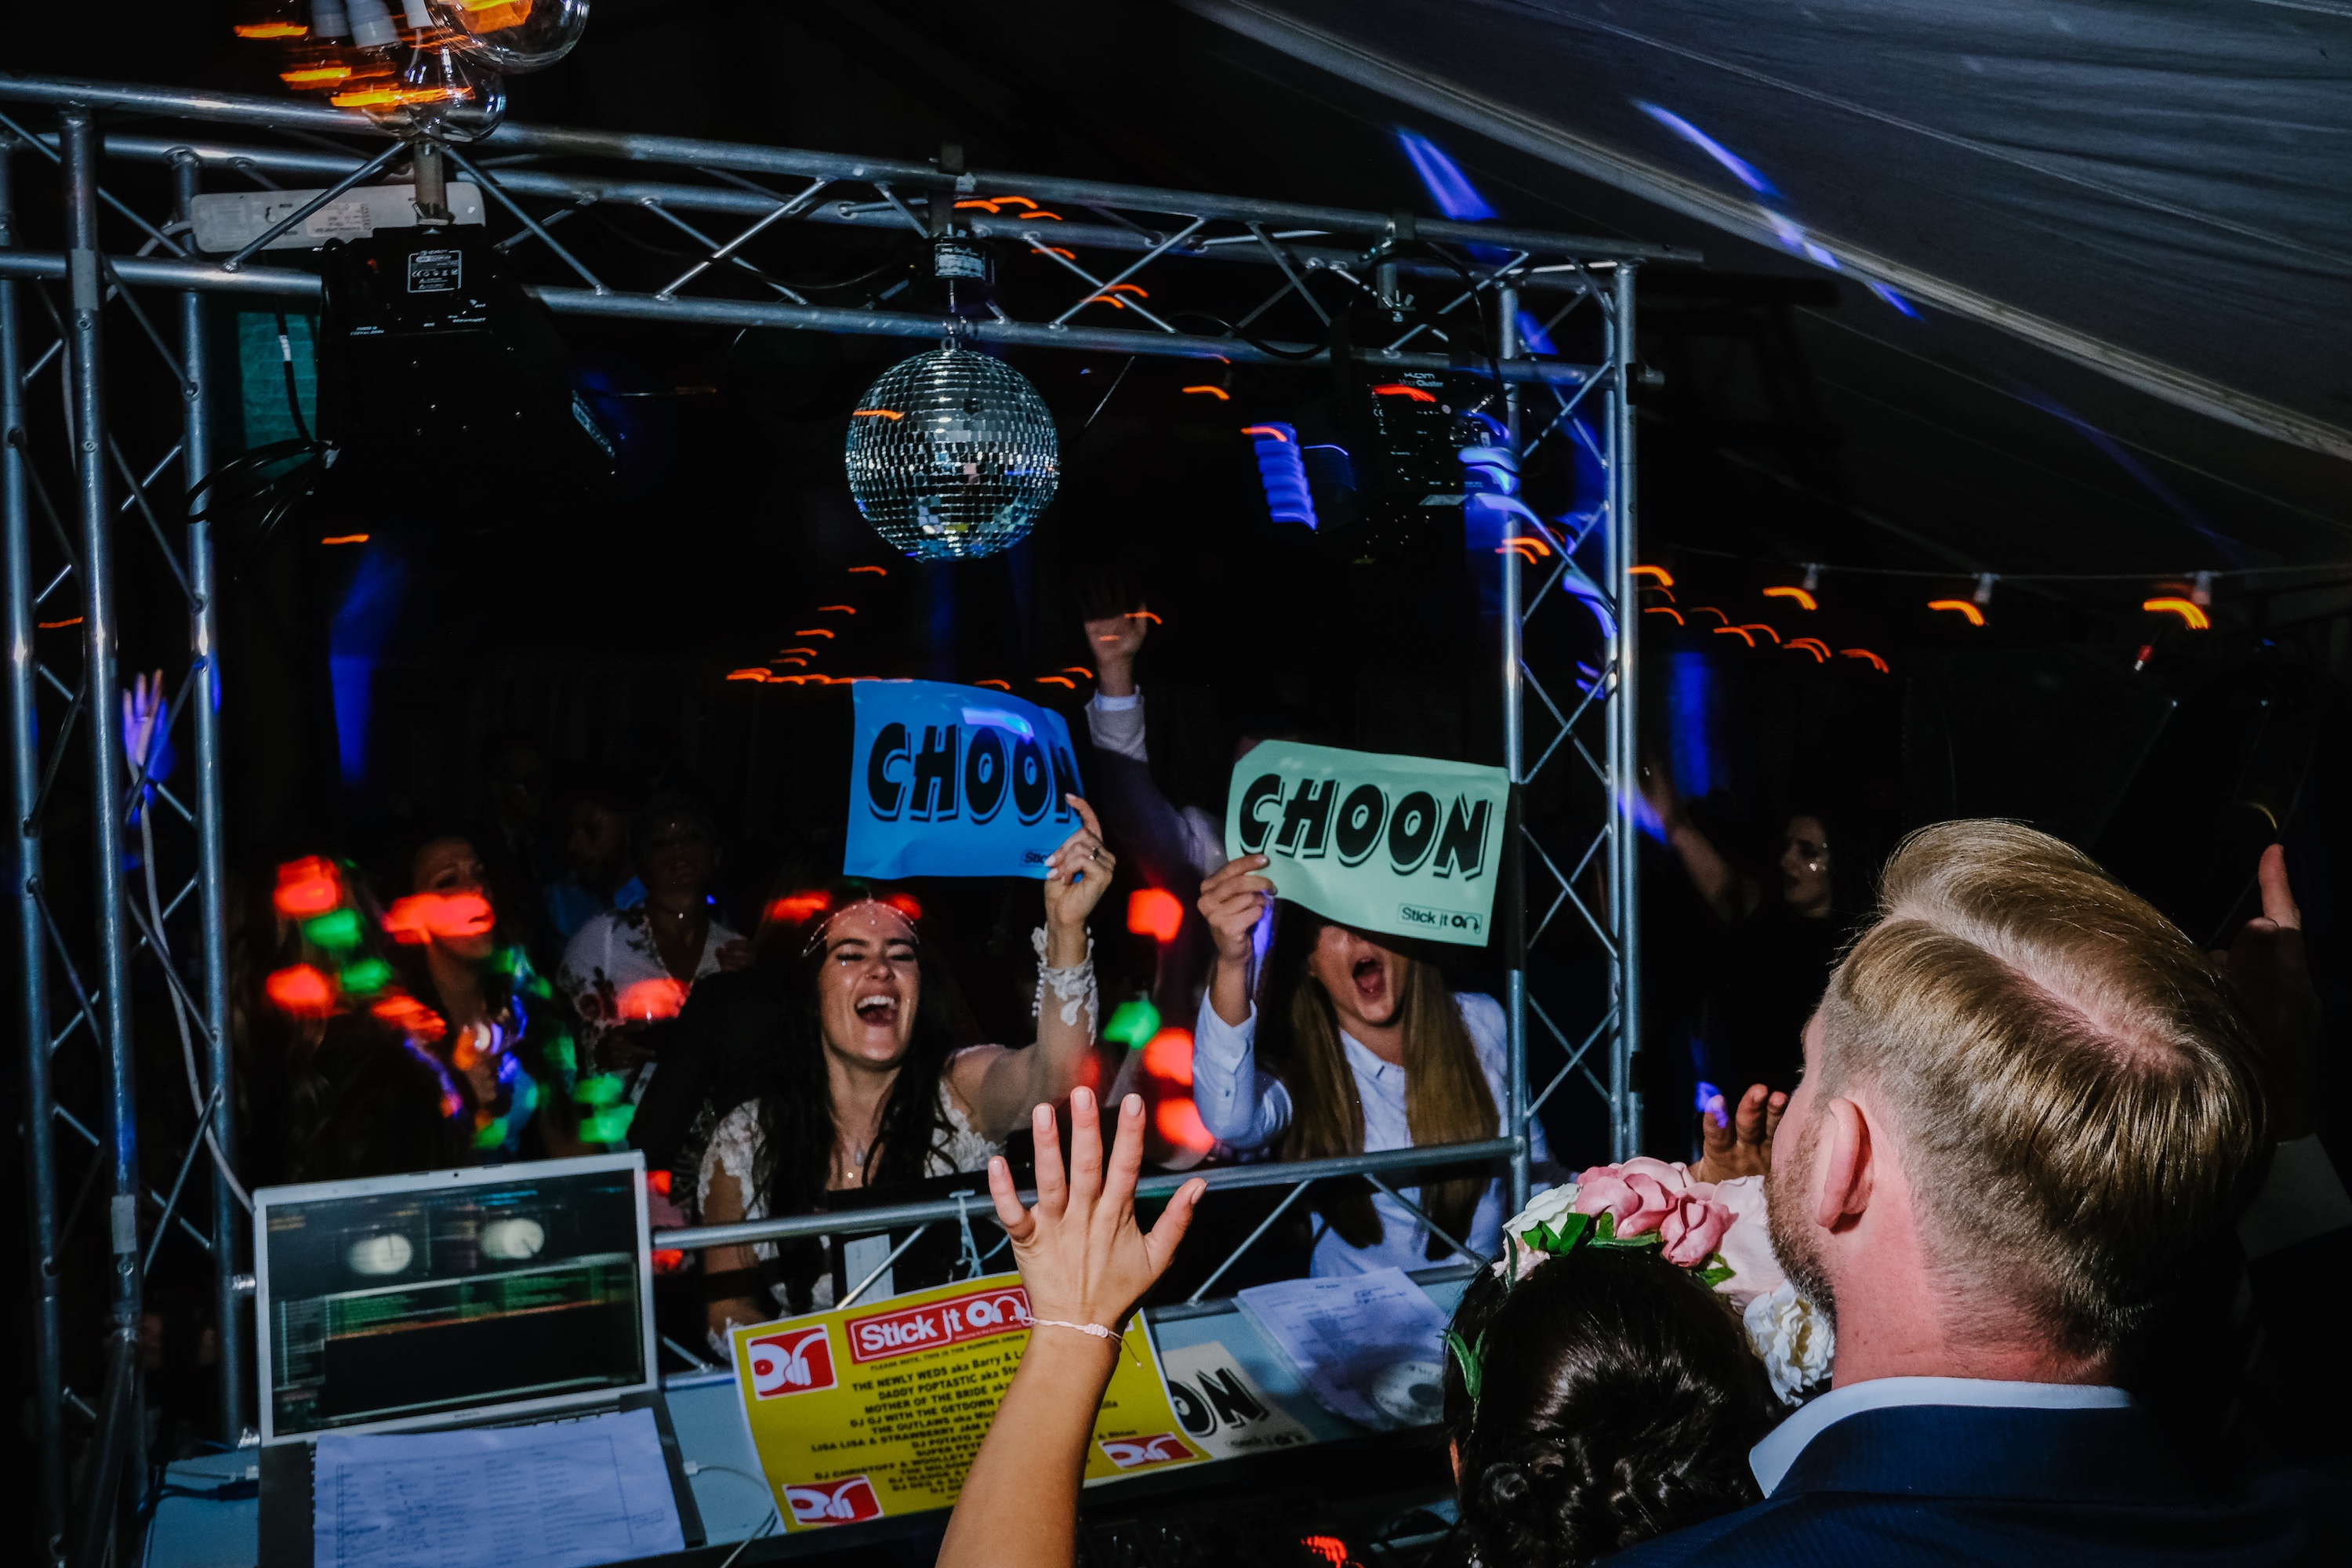 dj, brighton dj, wedding dj, birthday dj, private party